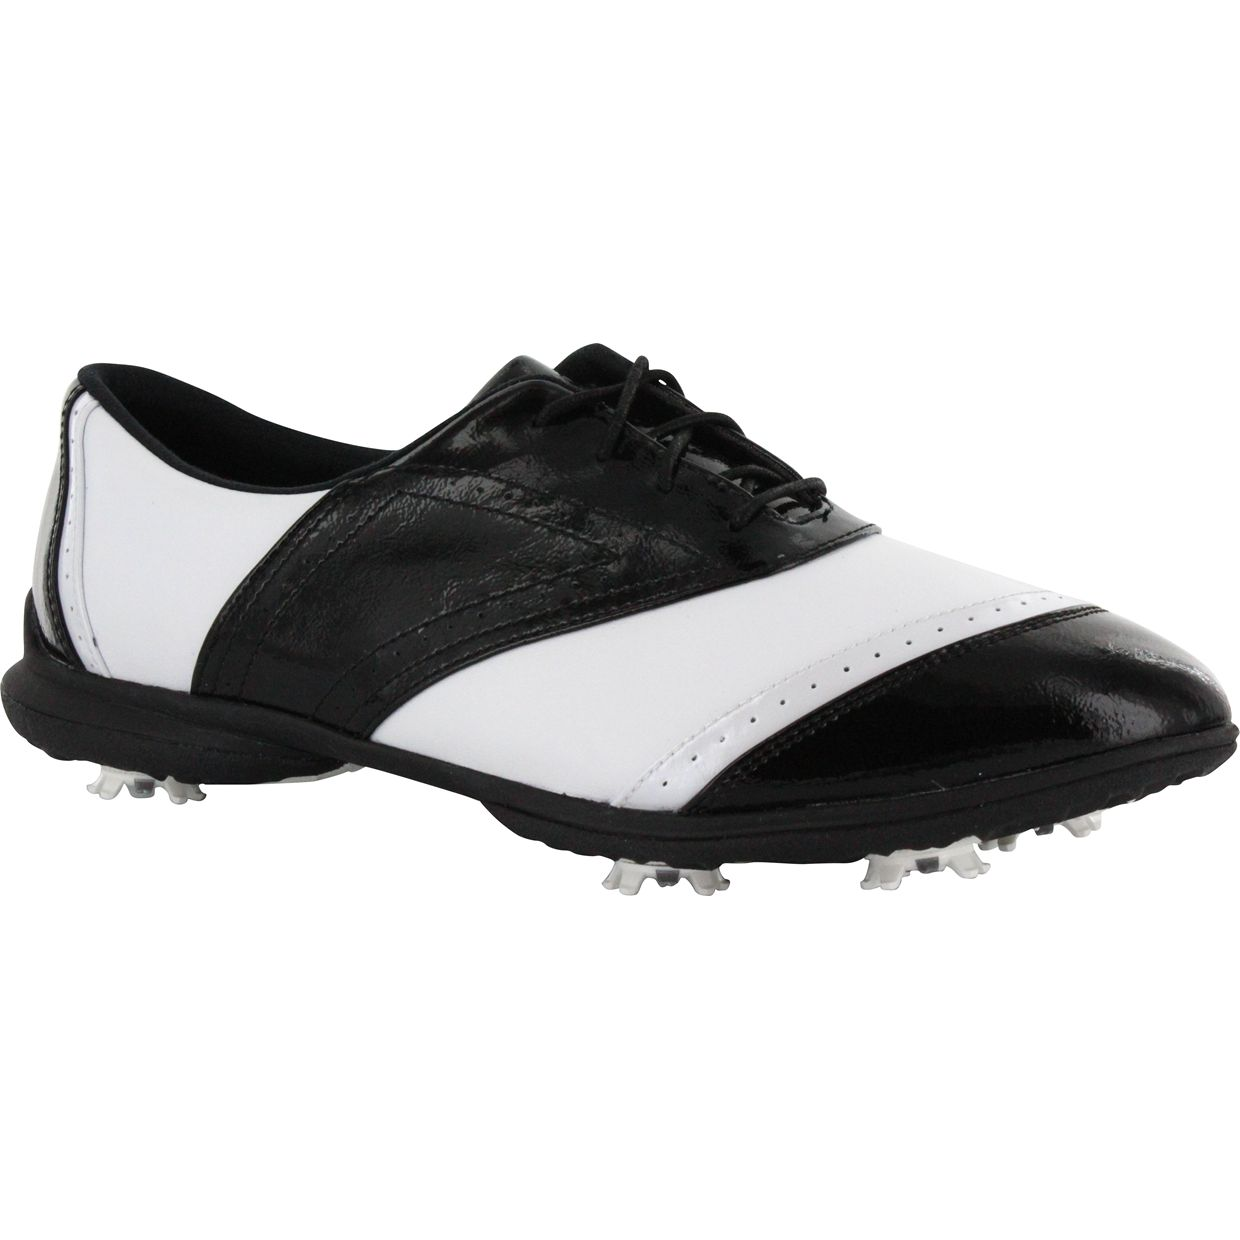 callaway golf shoes at globalgolf